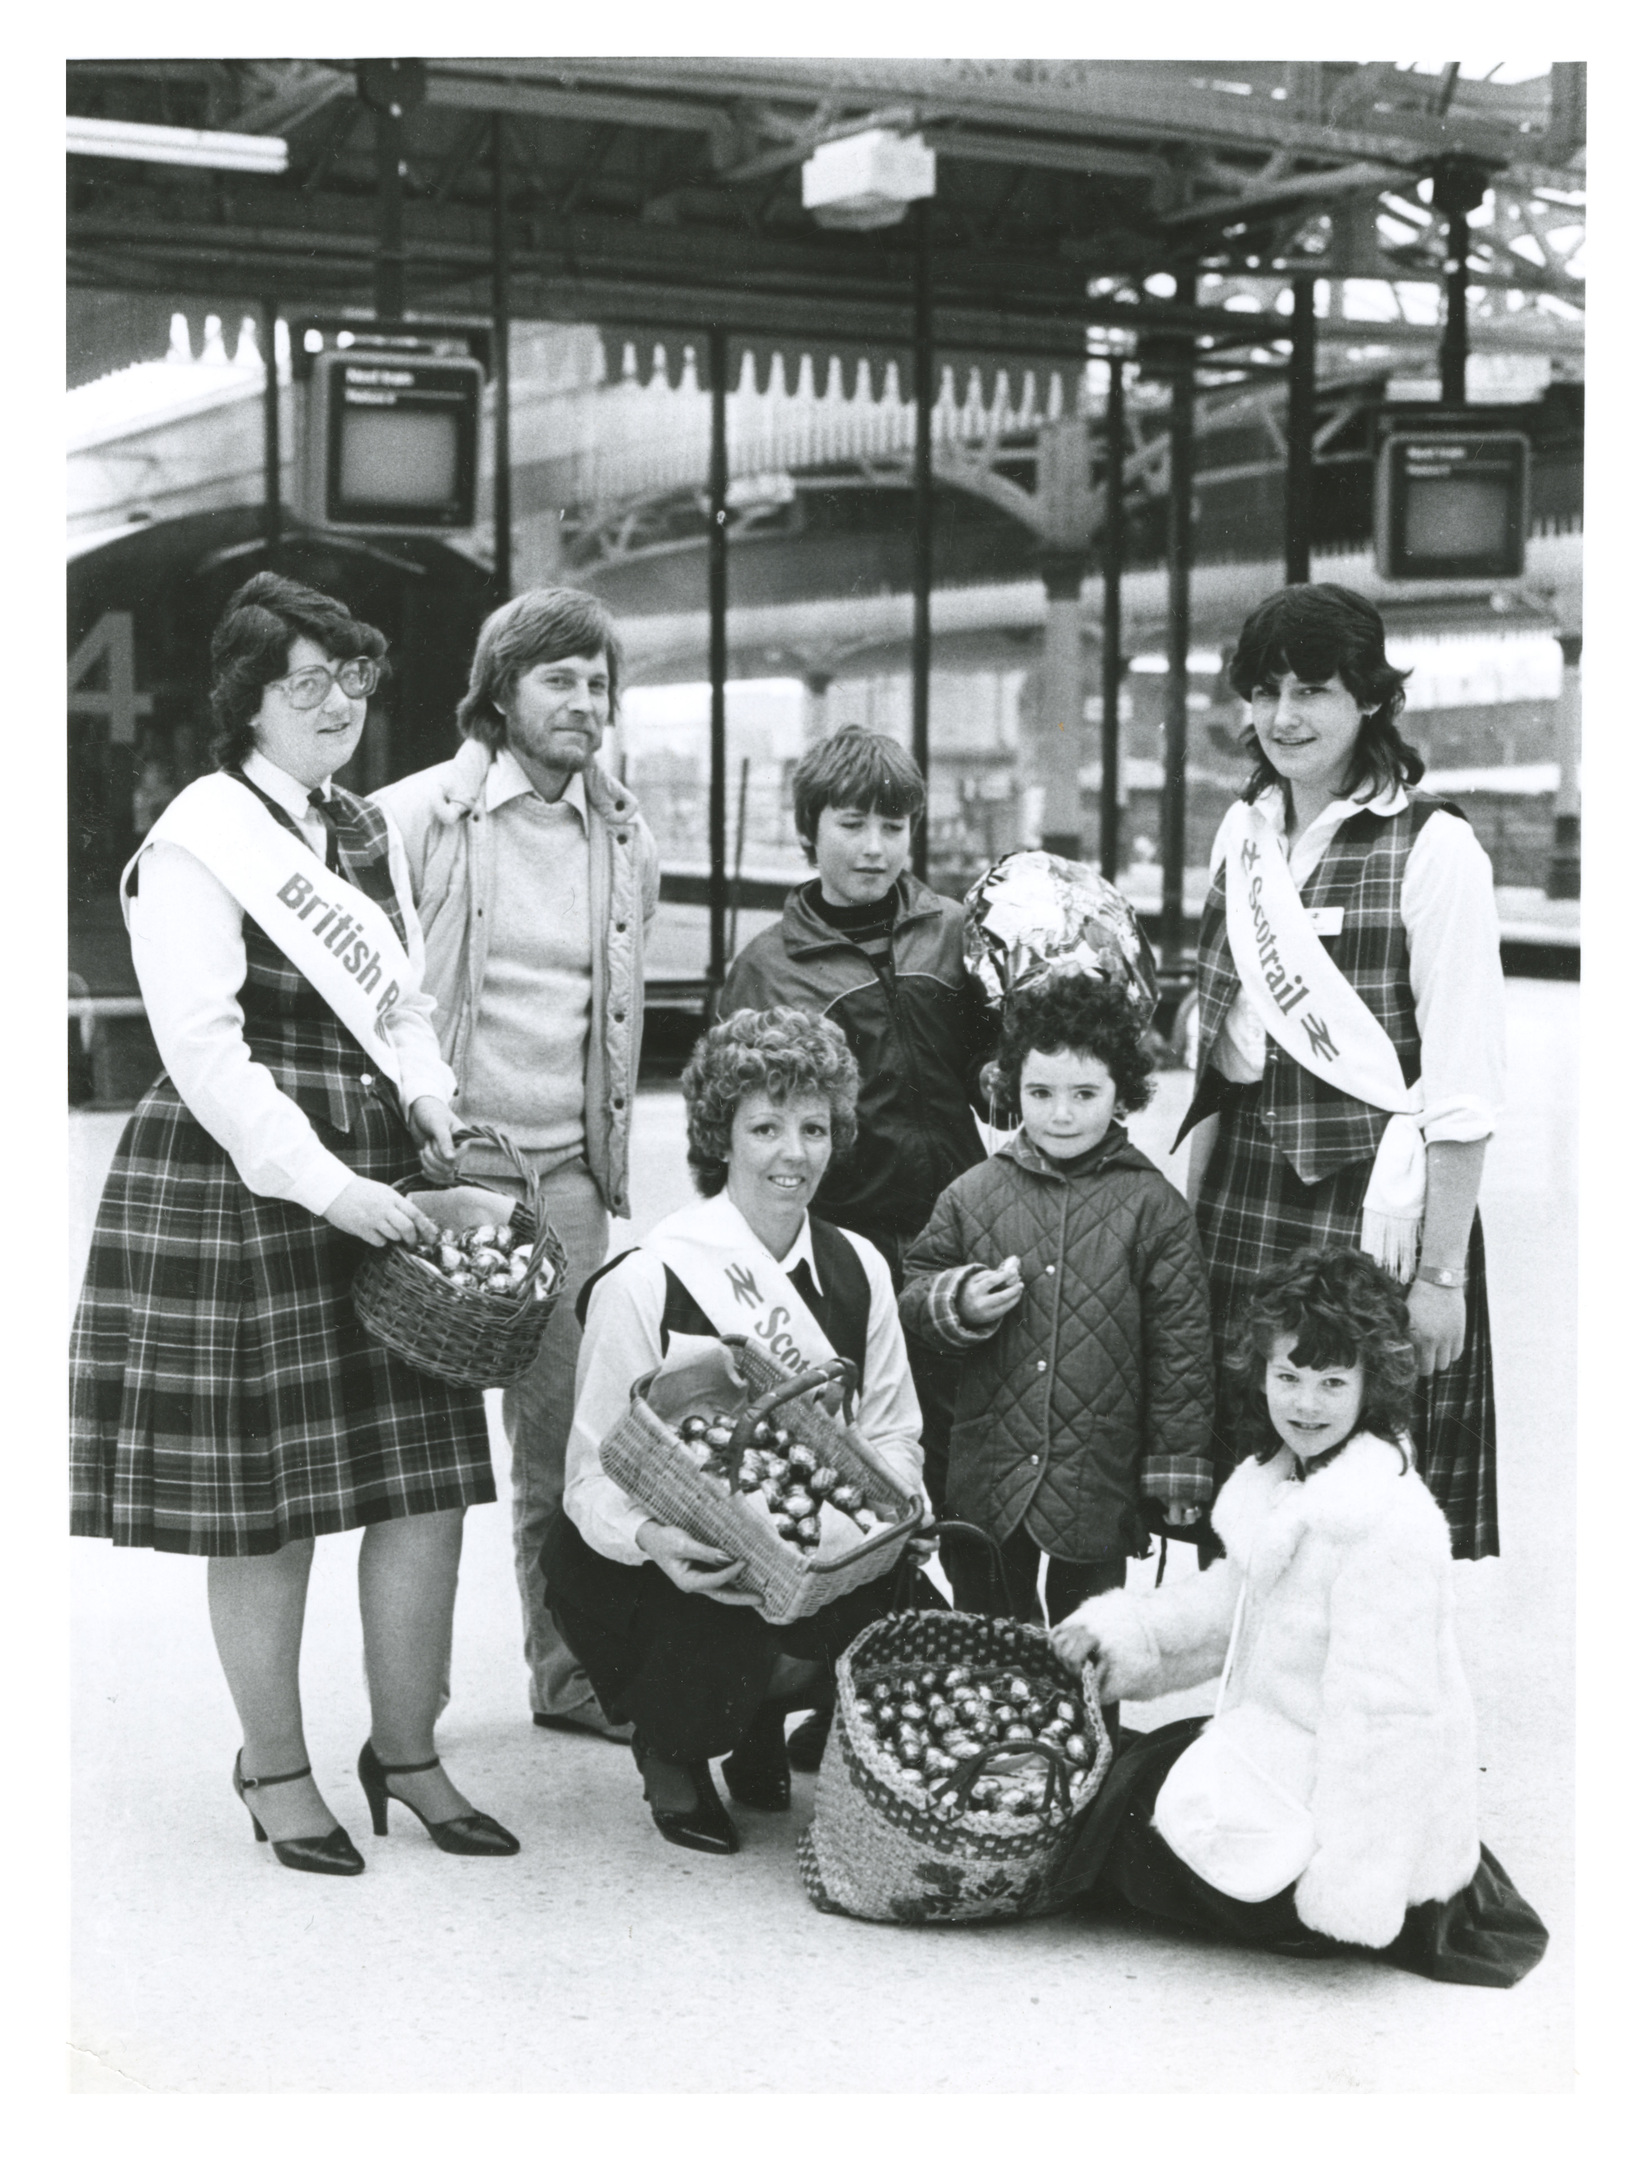 on right track: British Rail hostesses handed out chocolate eggs to children at Aberdeen Station.